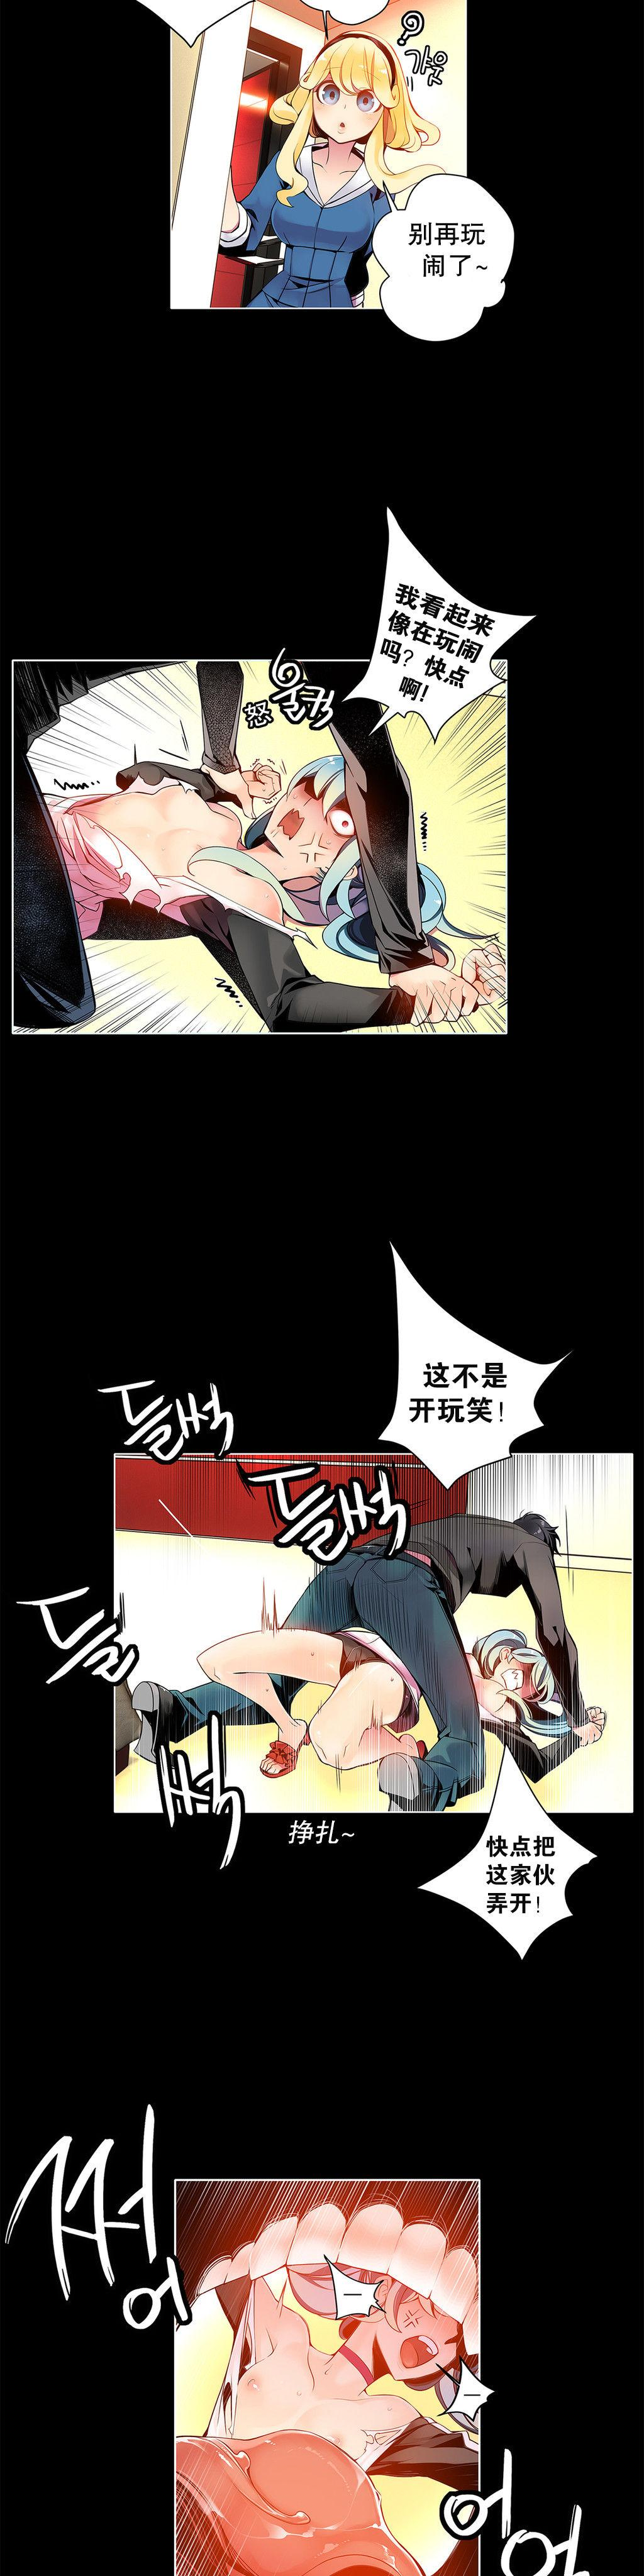 Lilith`s Cord   莉莉丝的脐带 Ch.1-37 156